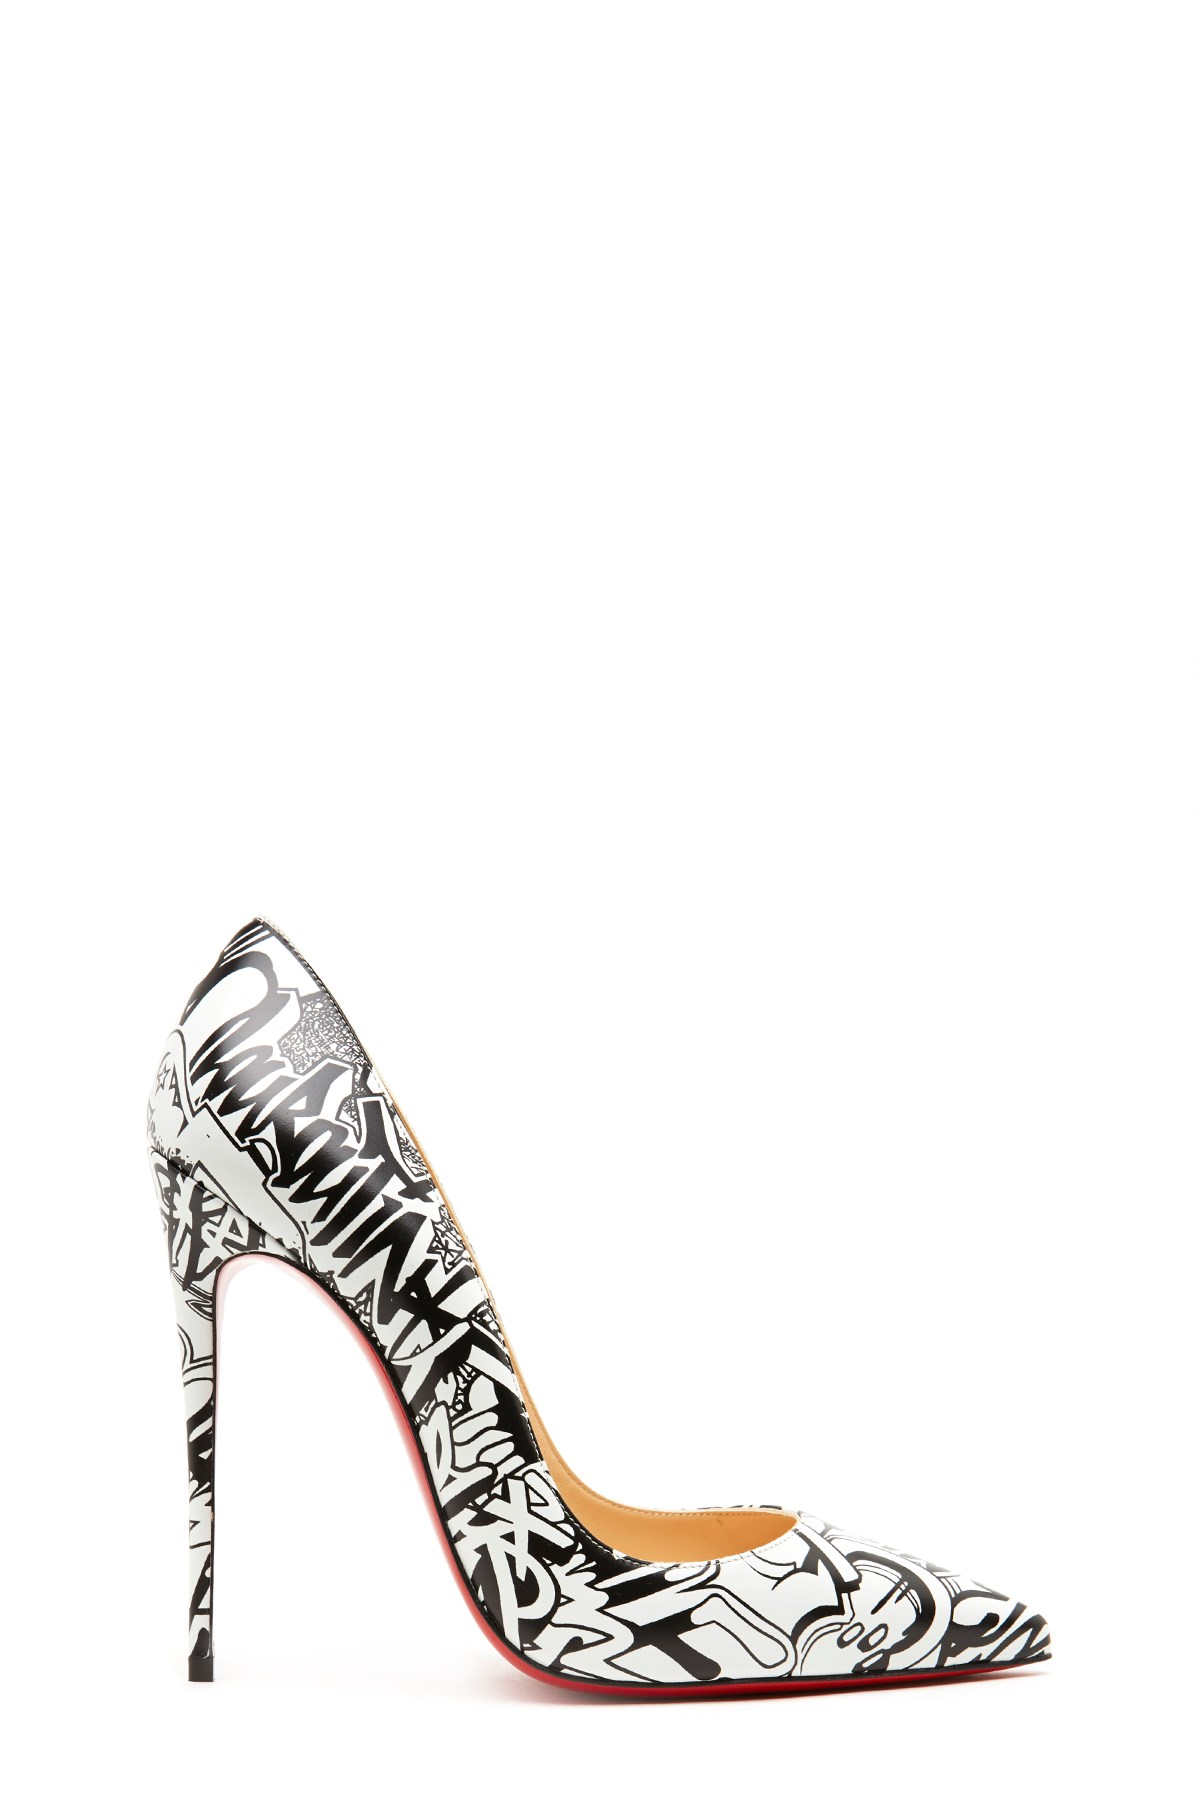 4d7d87829210 christian louboutin  so kate  pumps available on julian-fashion.com ...